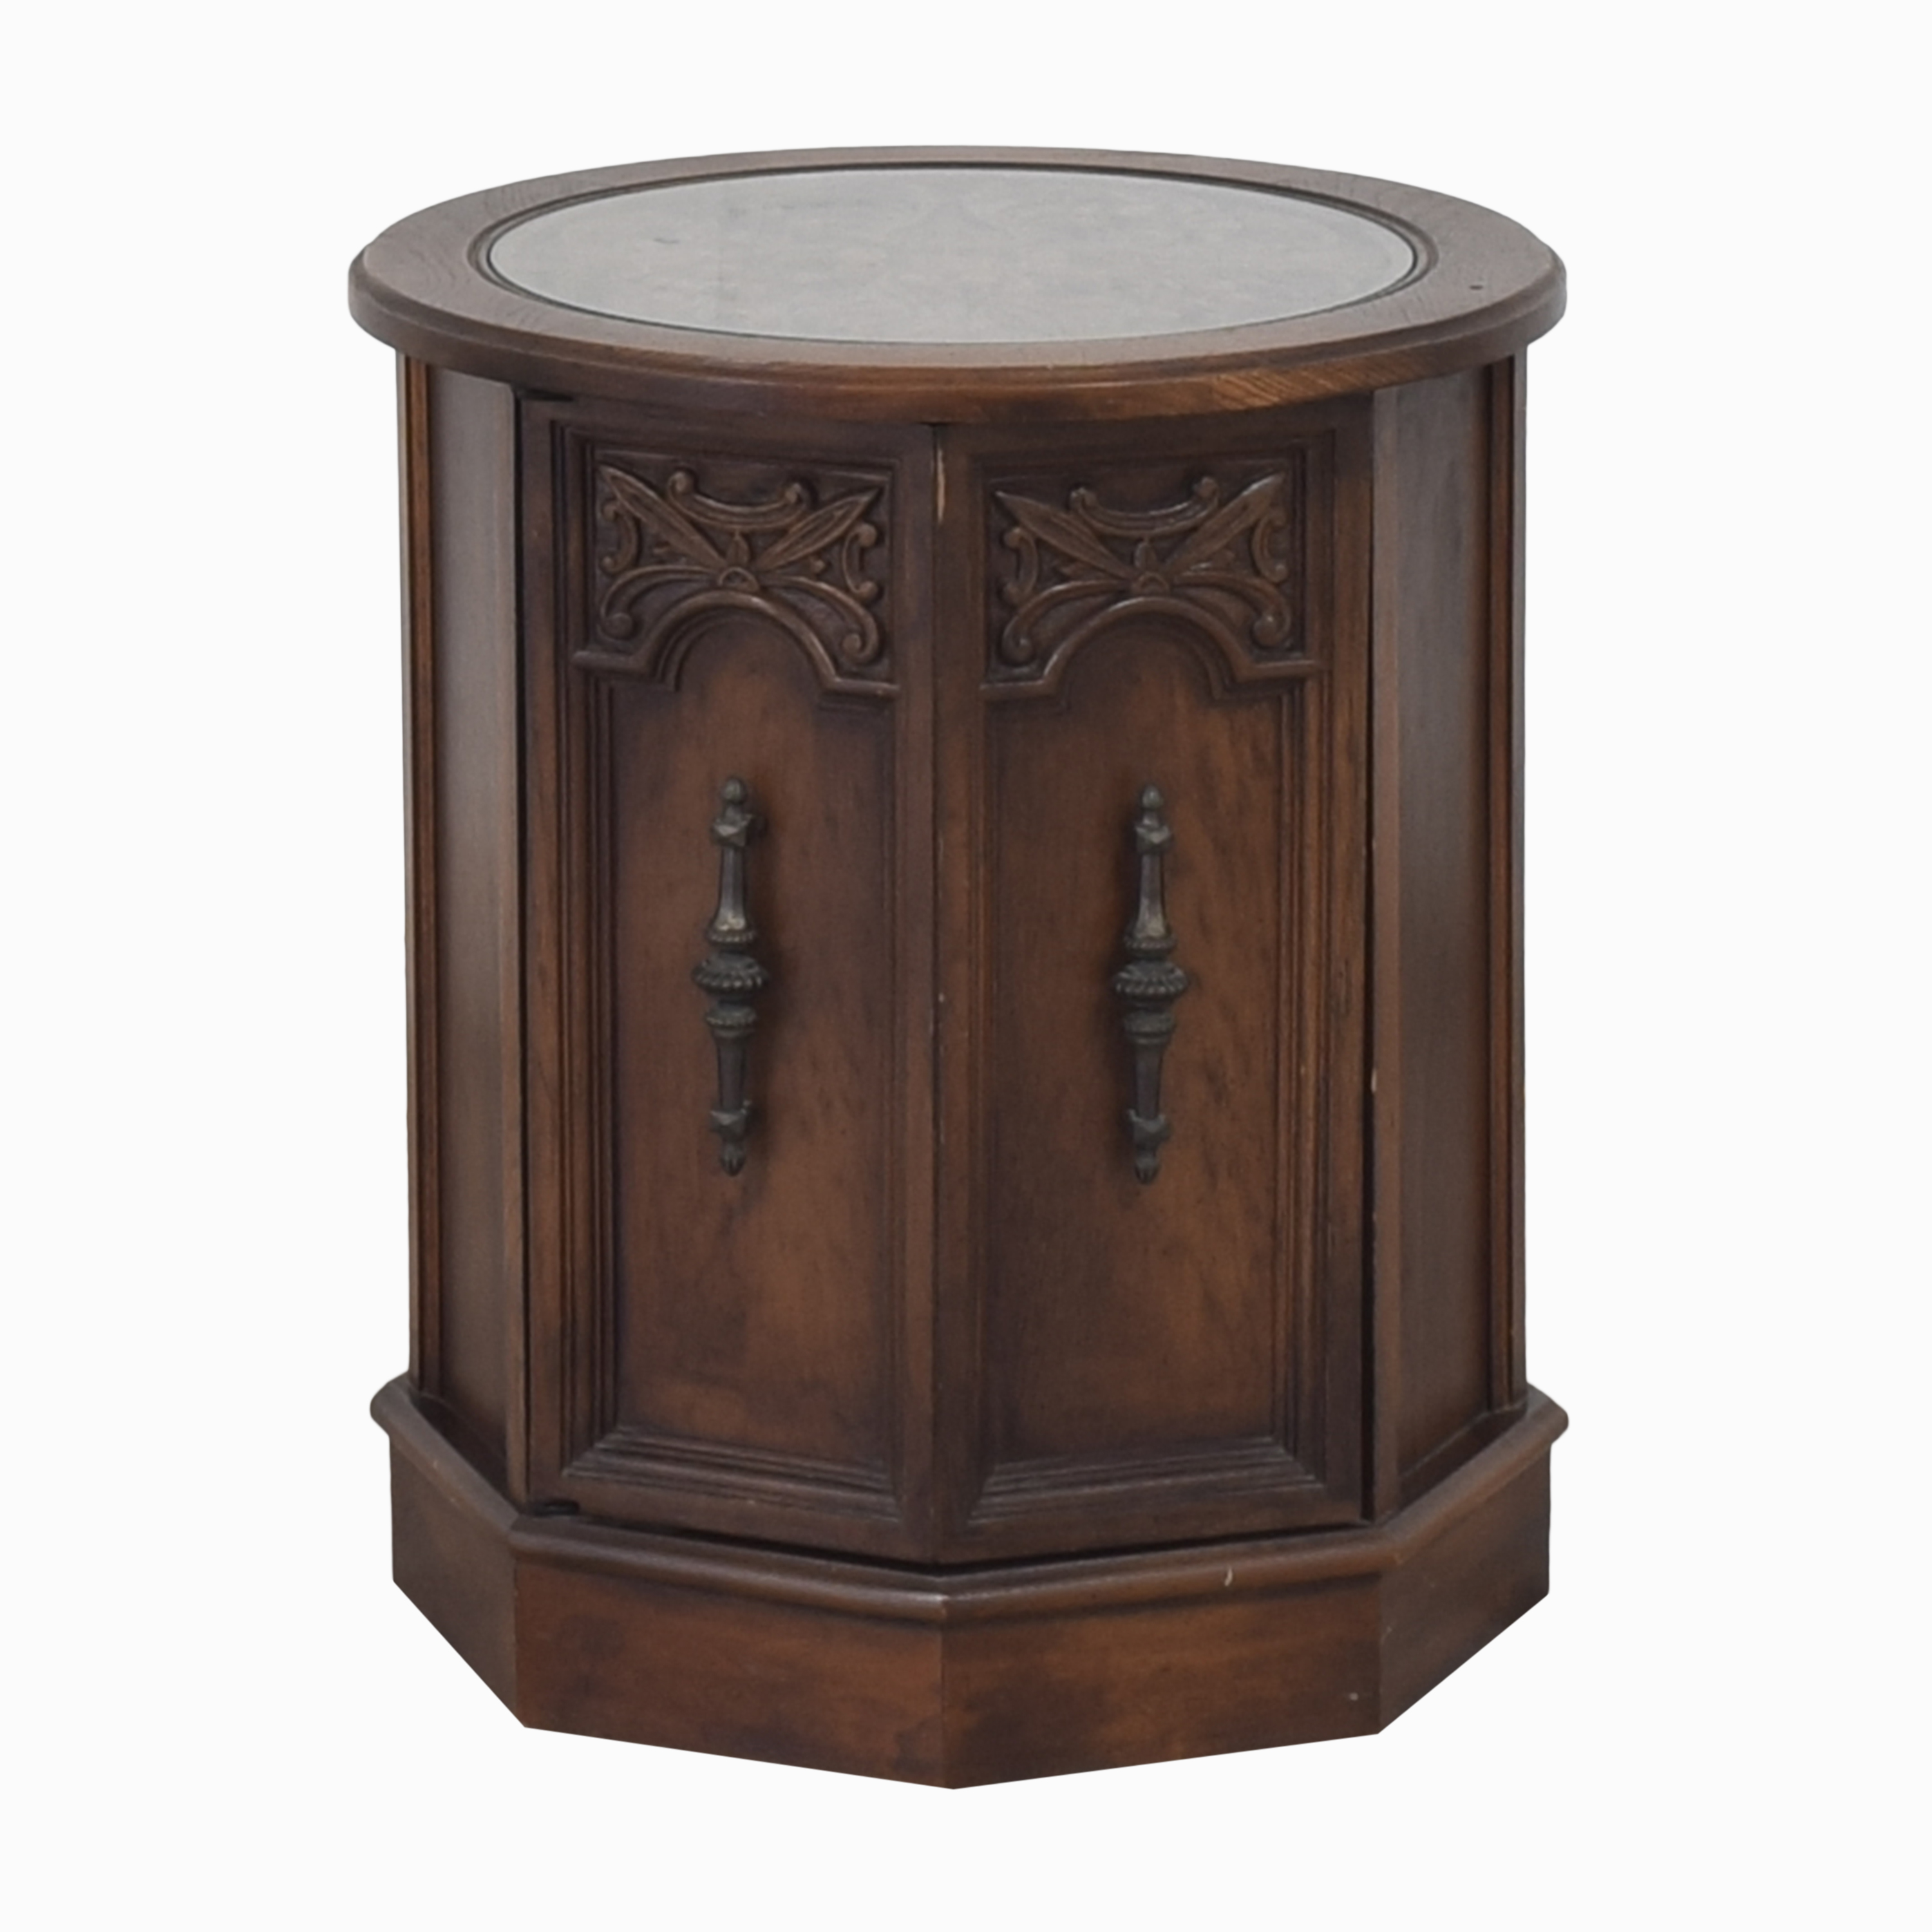 Octagonal Side Table with Cabinet